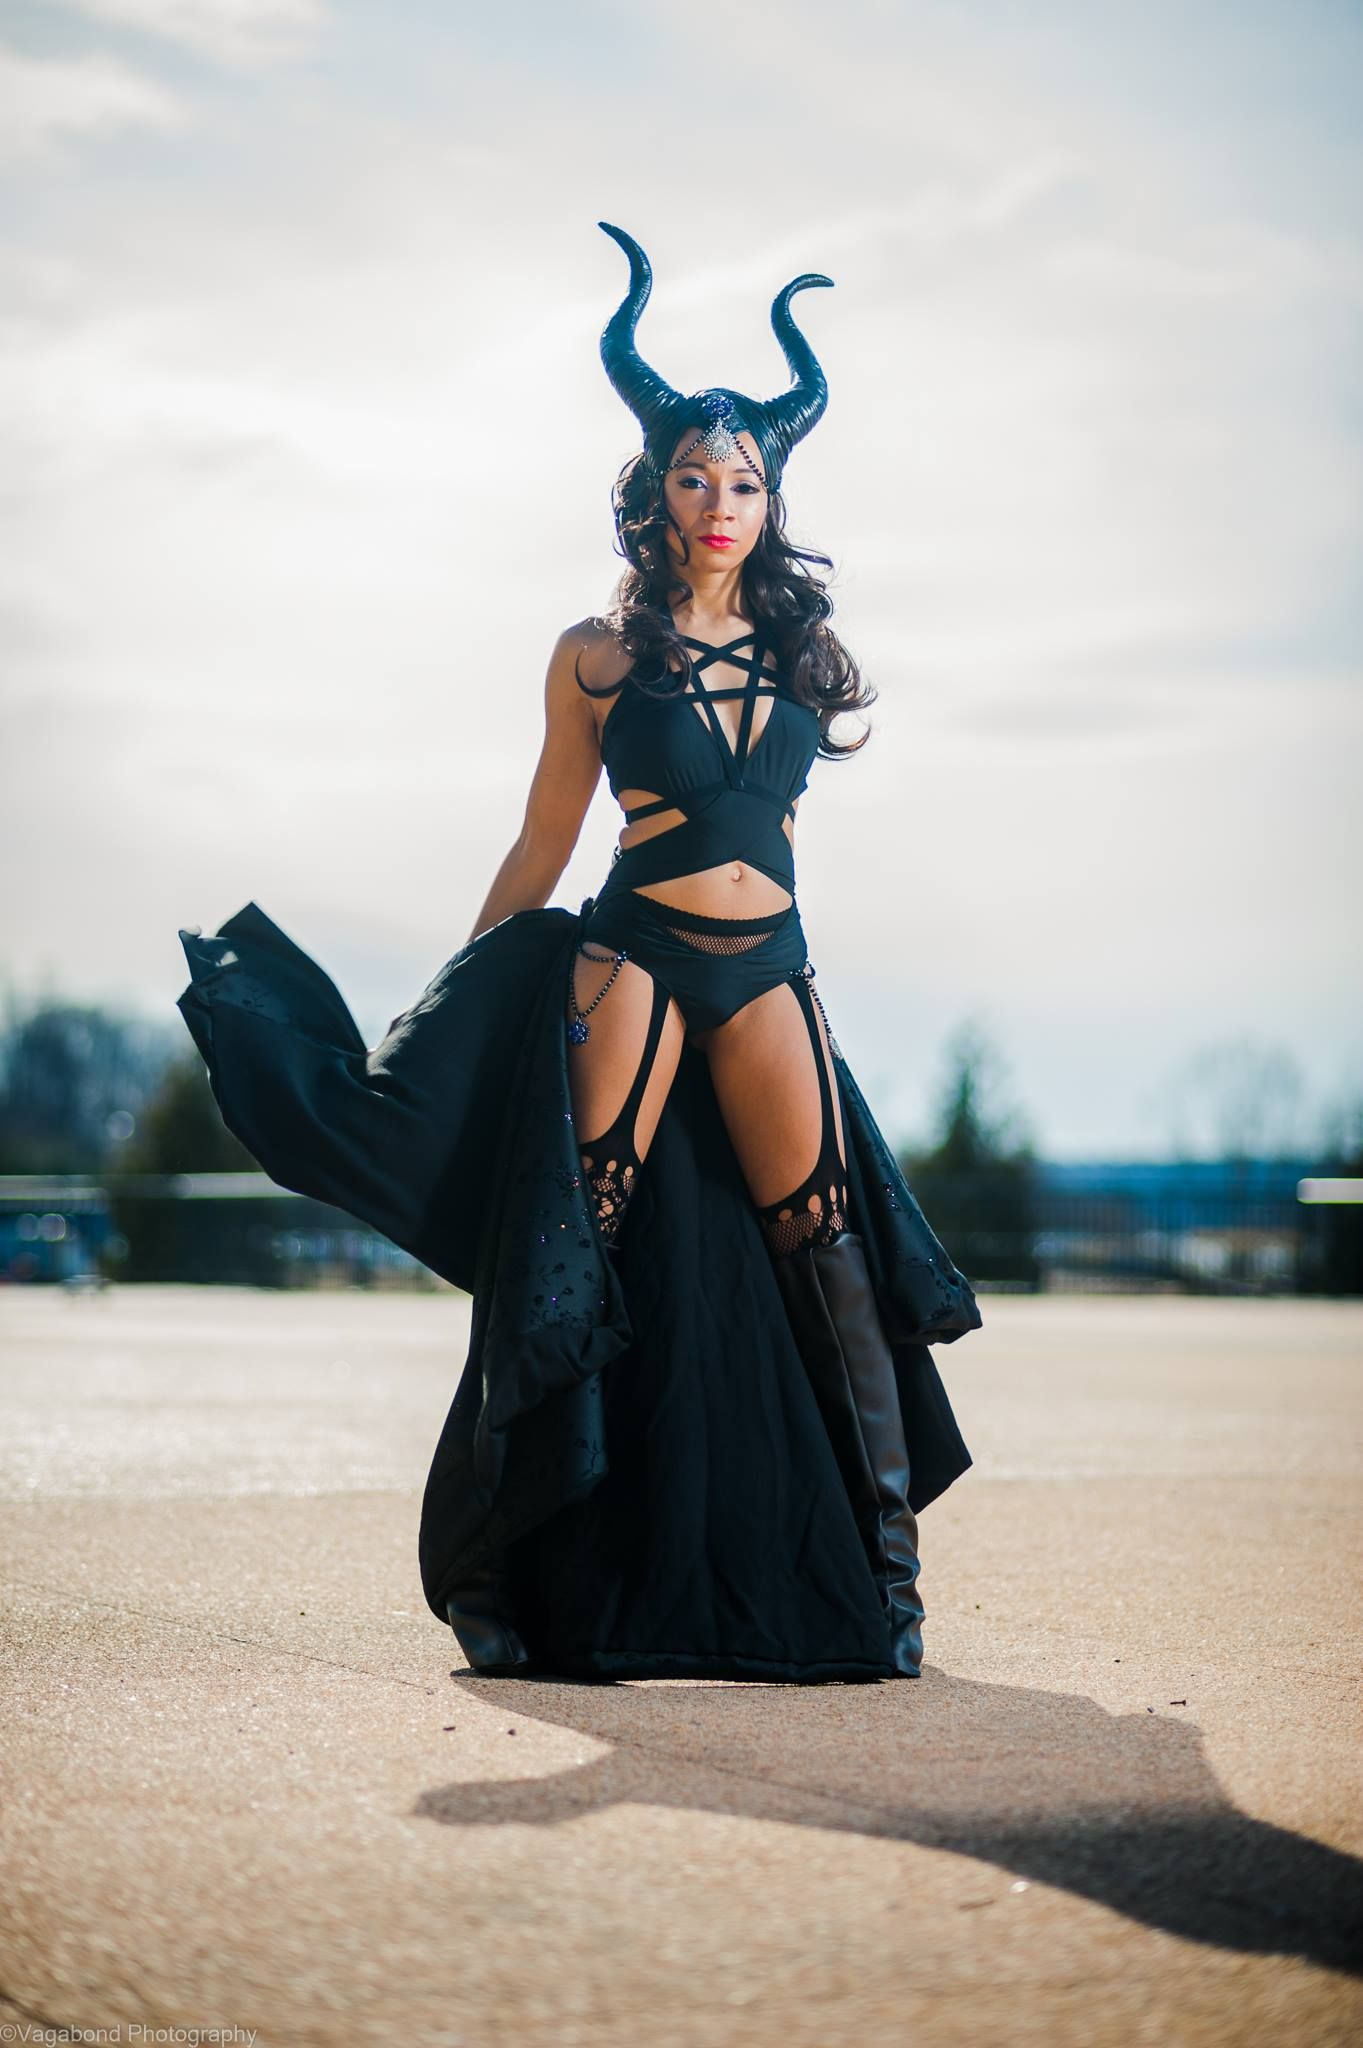 poster of maleficent cosplay modeled by the ever lovely jazzmin